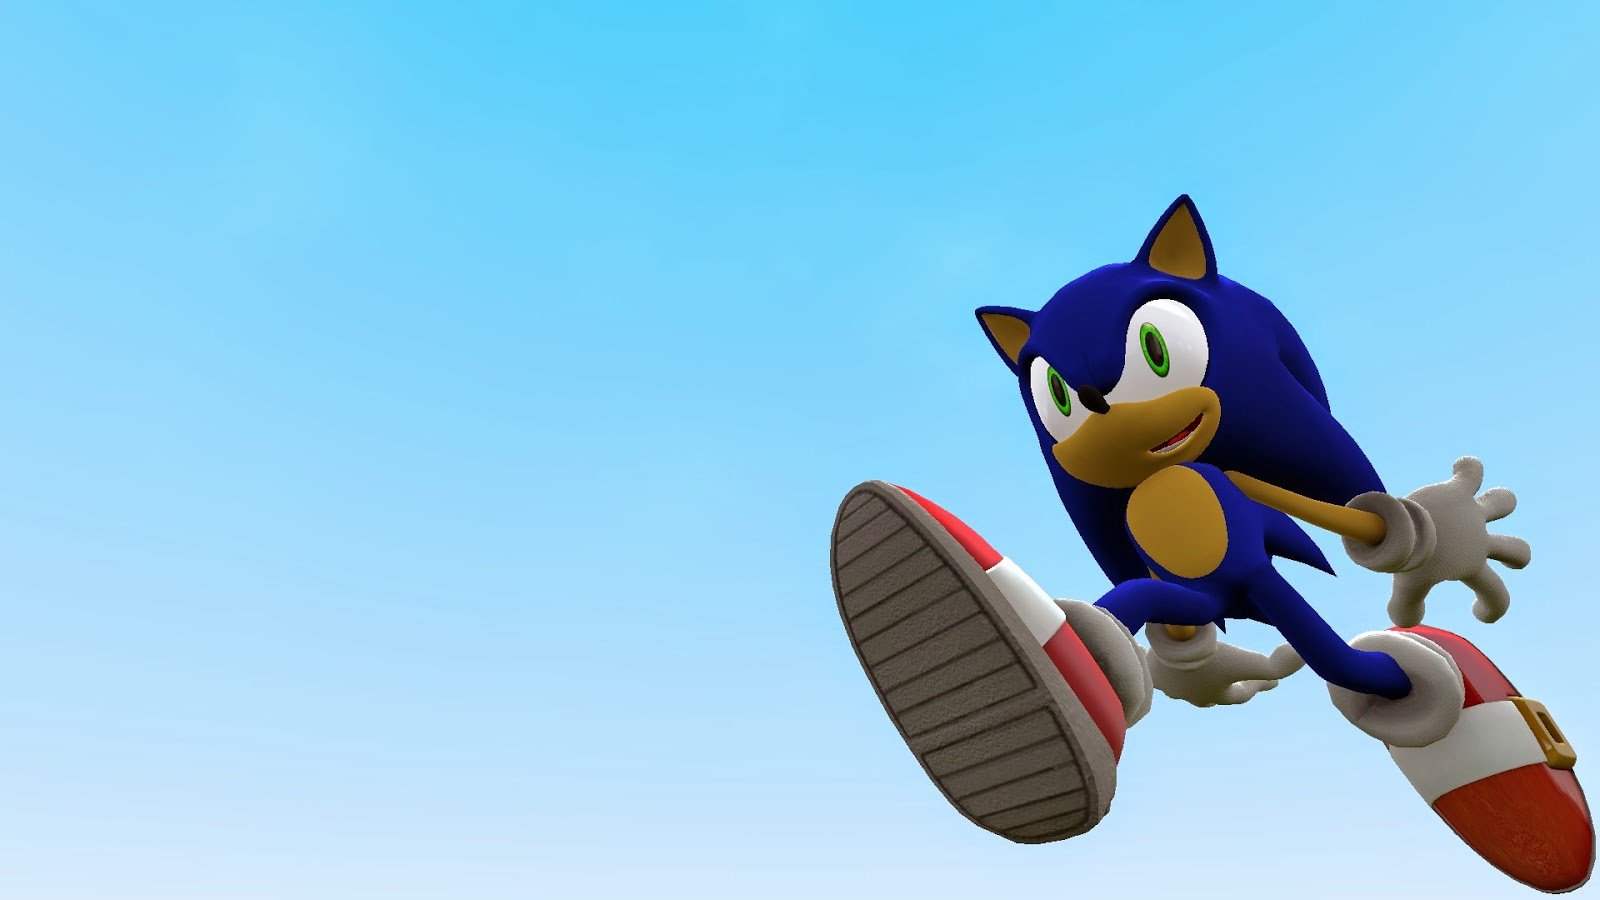 http://hypershadow2010.deviantart.com/art/Sonic-the-Hedgehog-running-angle-349702564